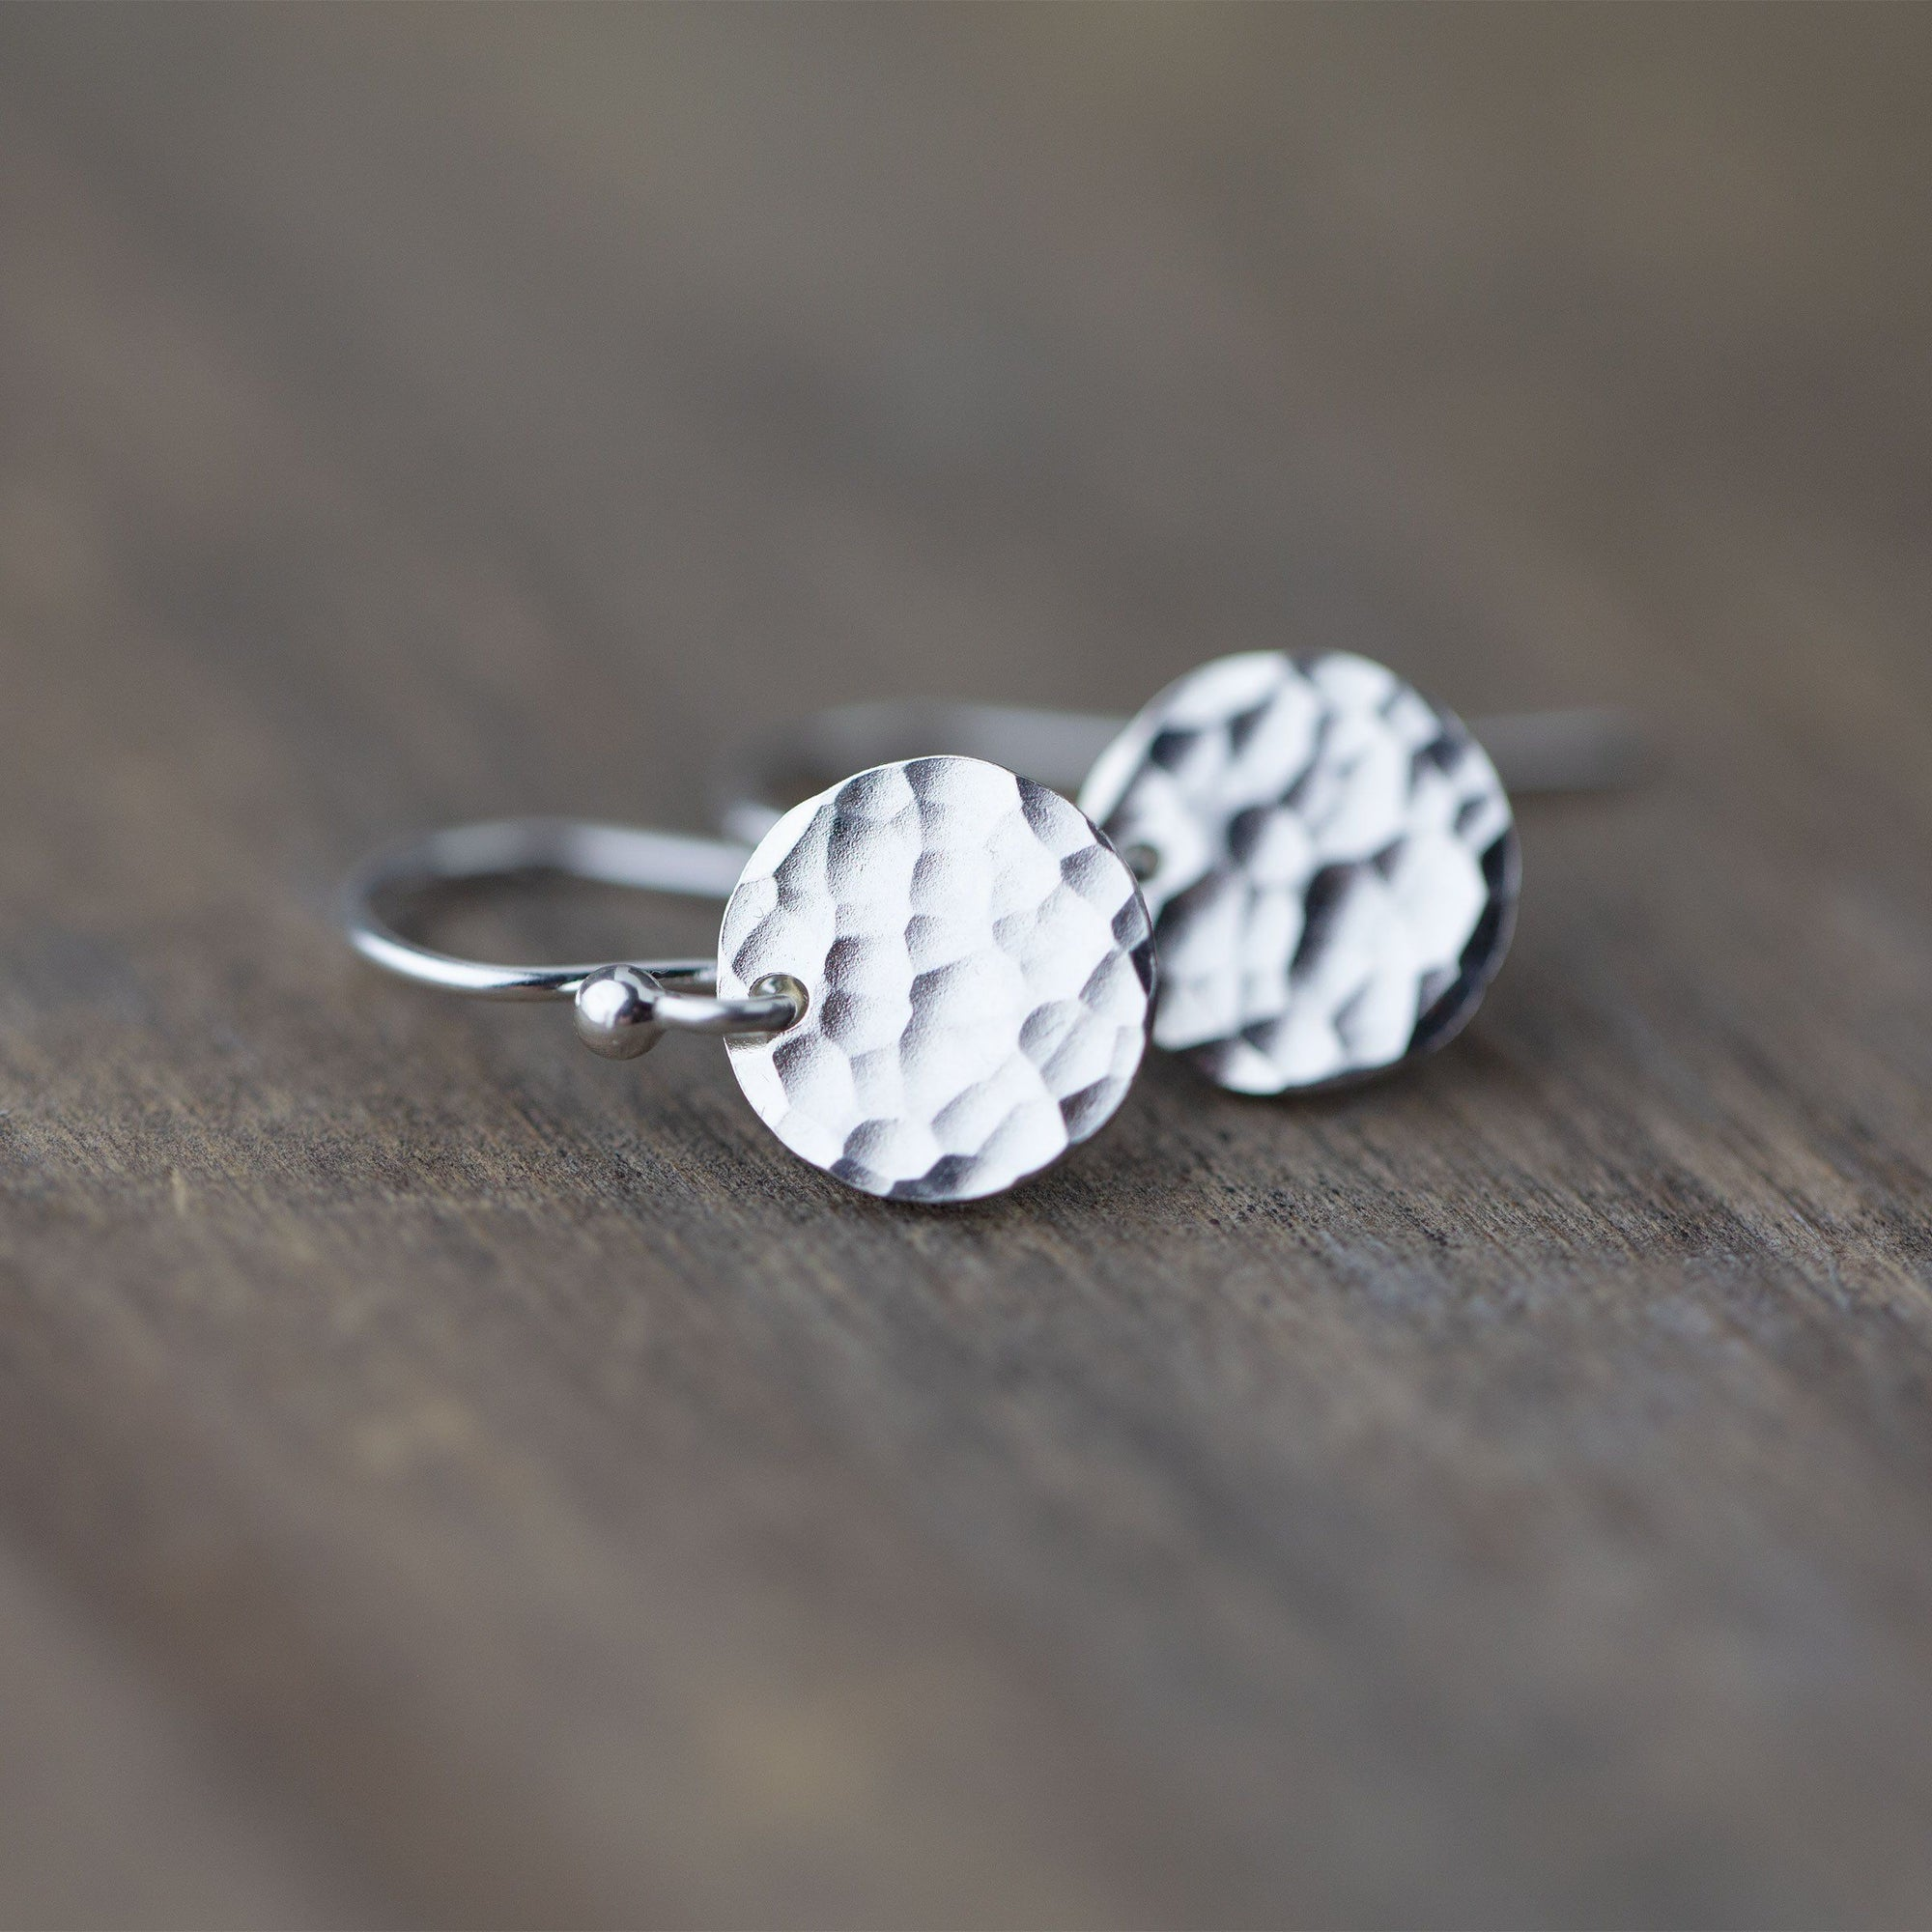 Tiny Silver Hammered Disc Earrings - Handmade Jewelry by Burnish